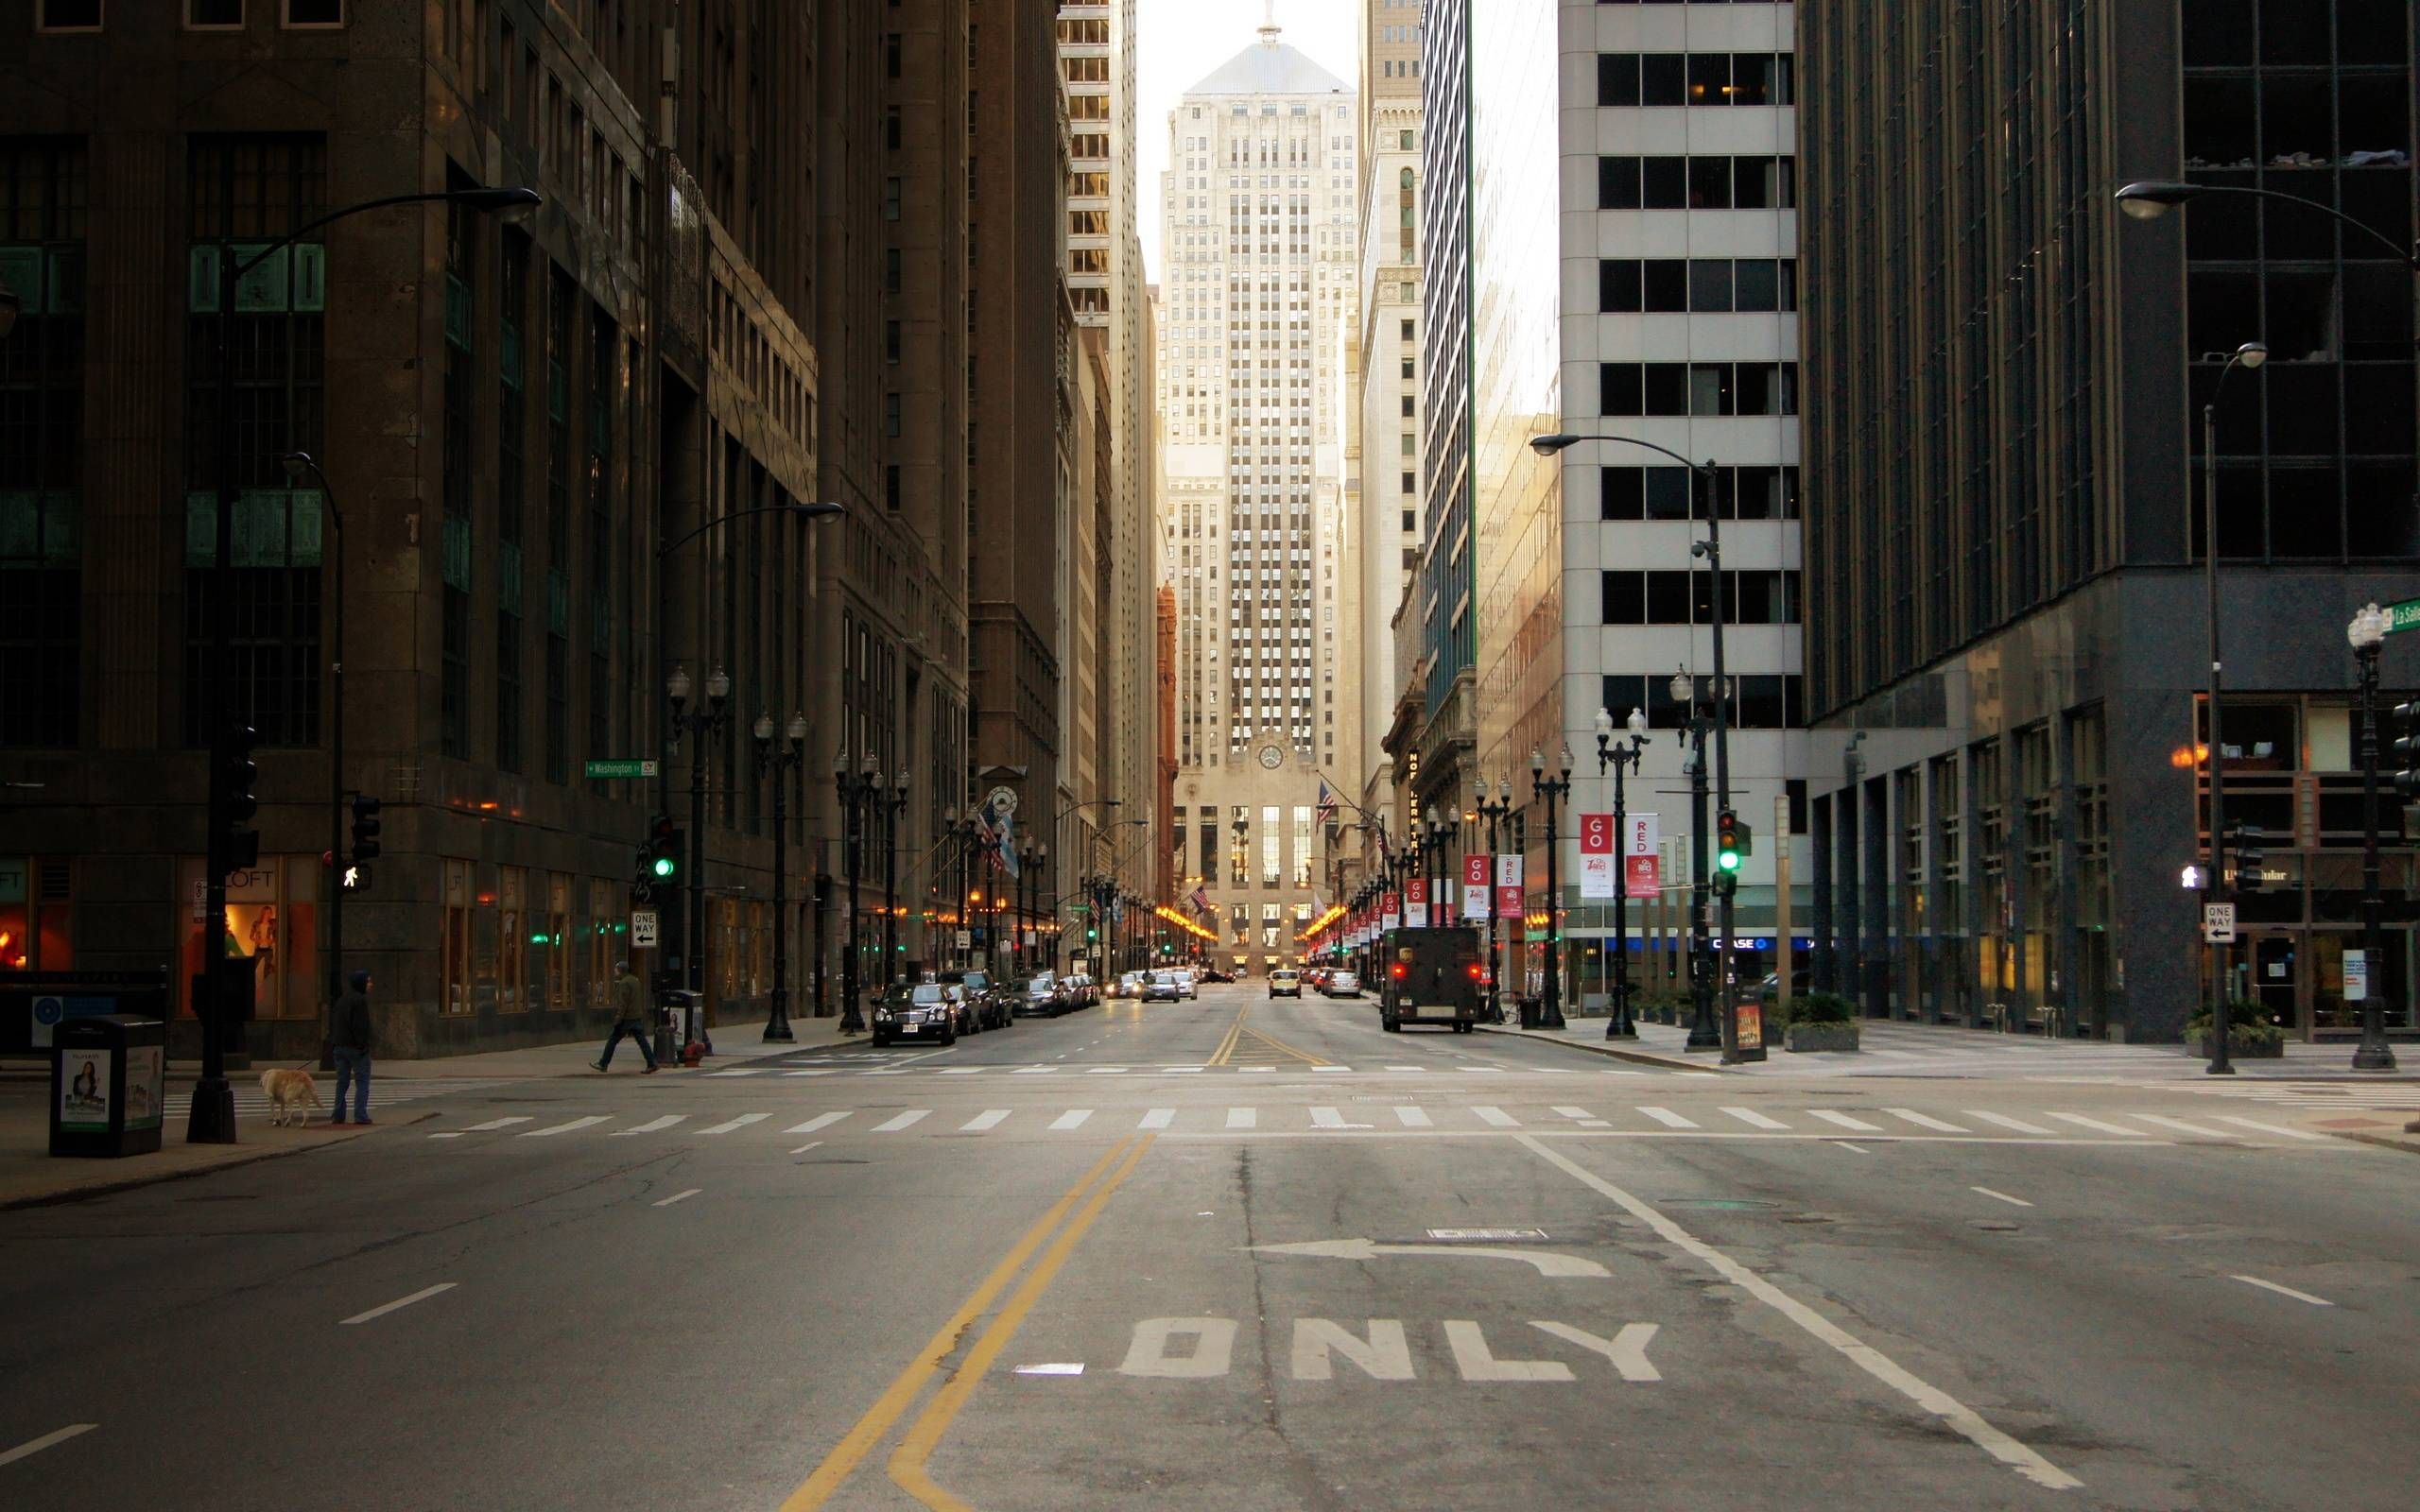 City street backgrounds wallpaper cave city street of chicago in usa skyscrapers wallpaper voltagebd Images